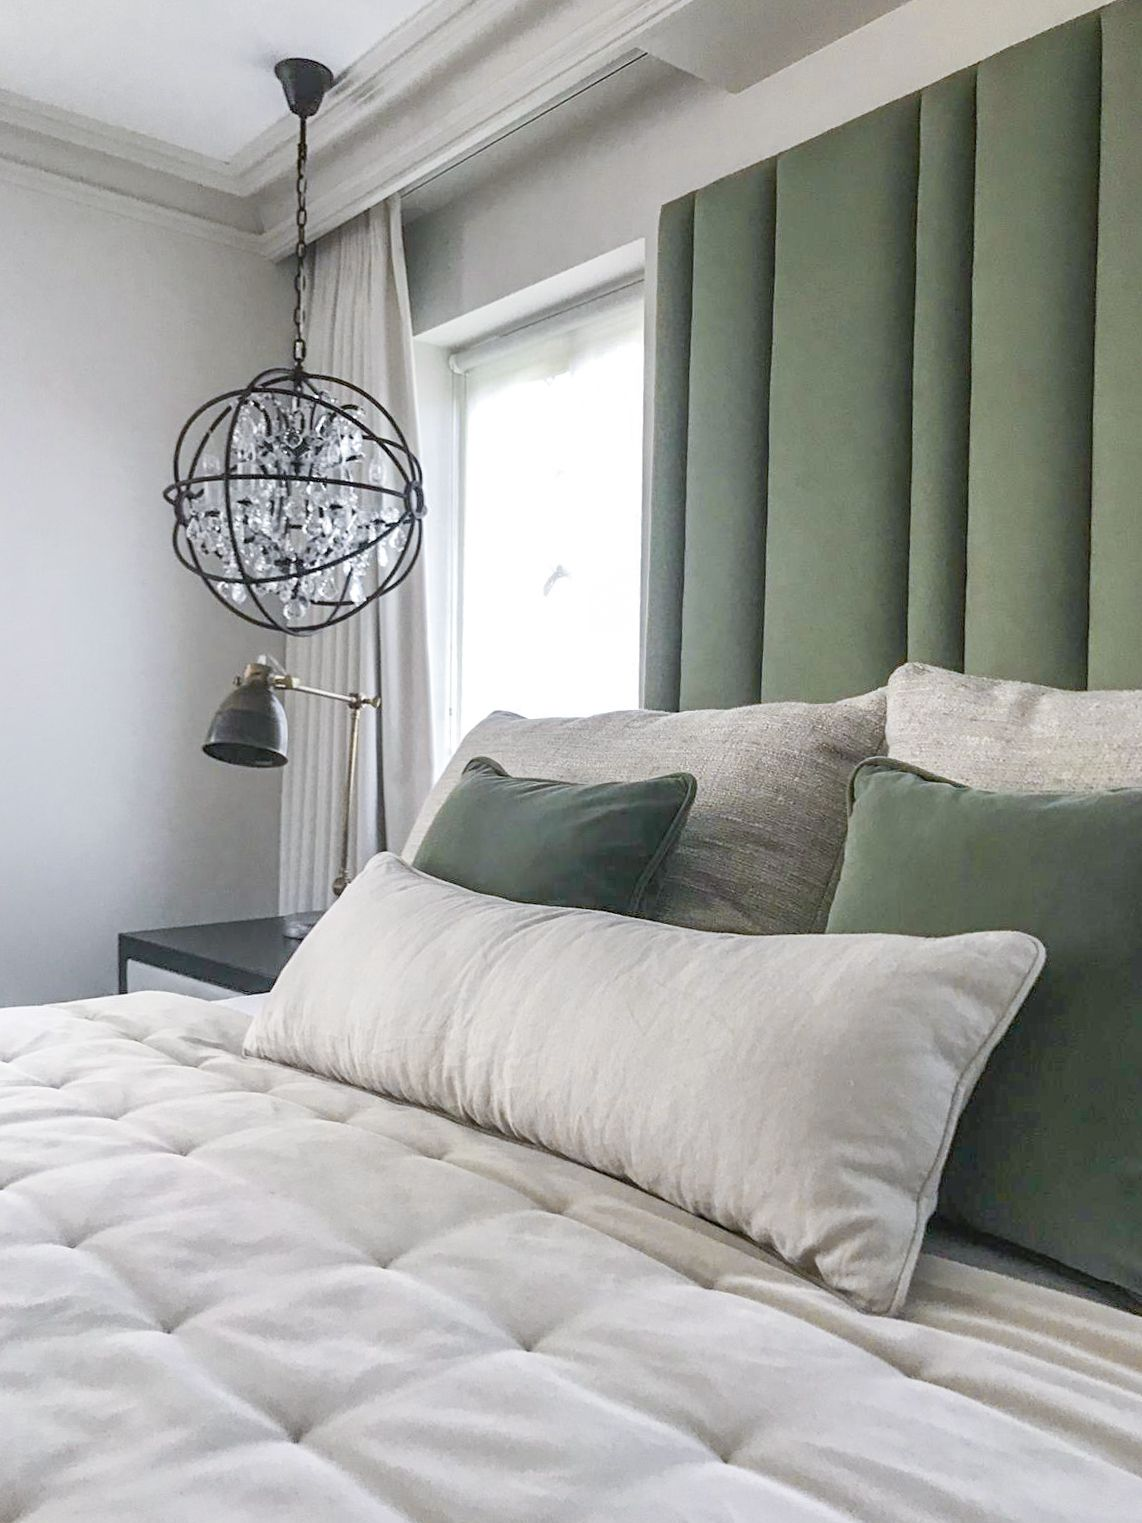 . Hotel room vibes for this guest room   guestbedroom  bedroomdesign